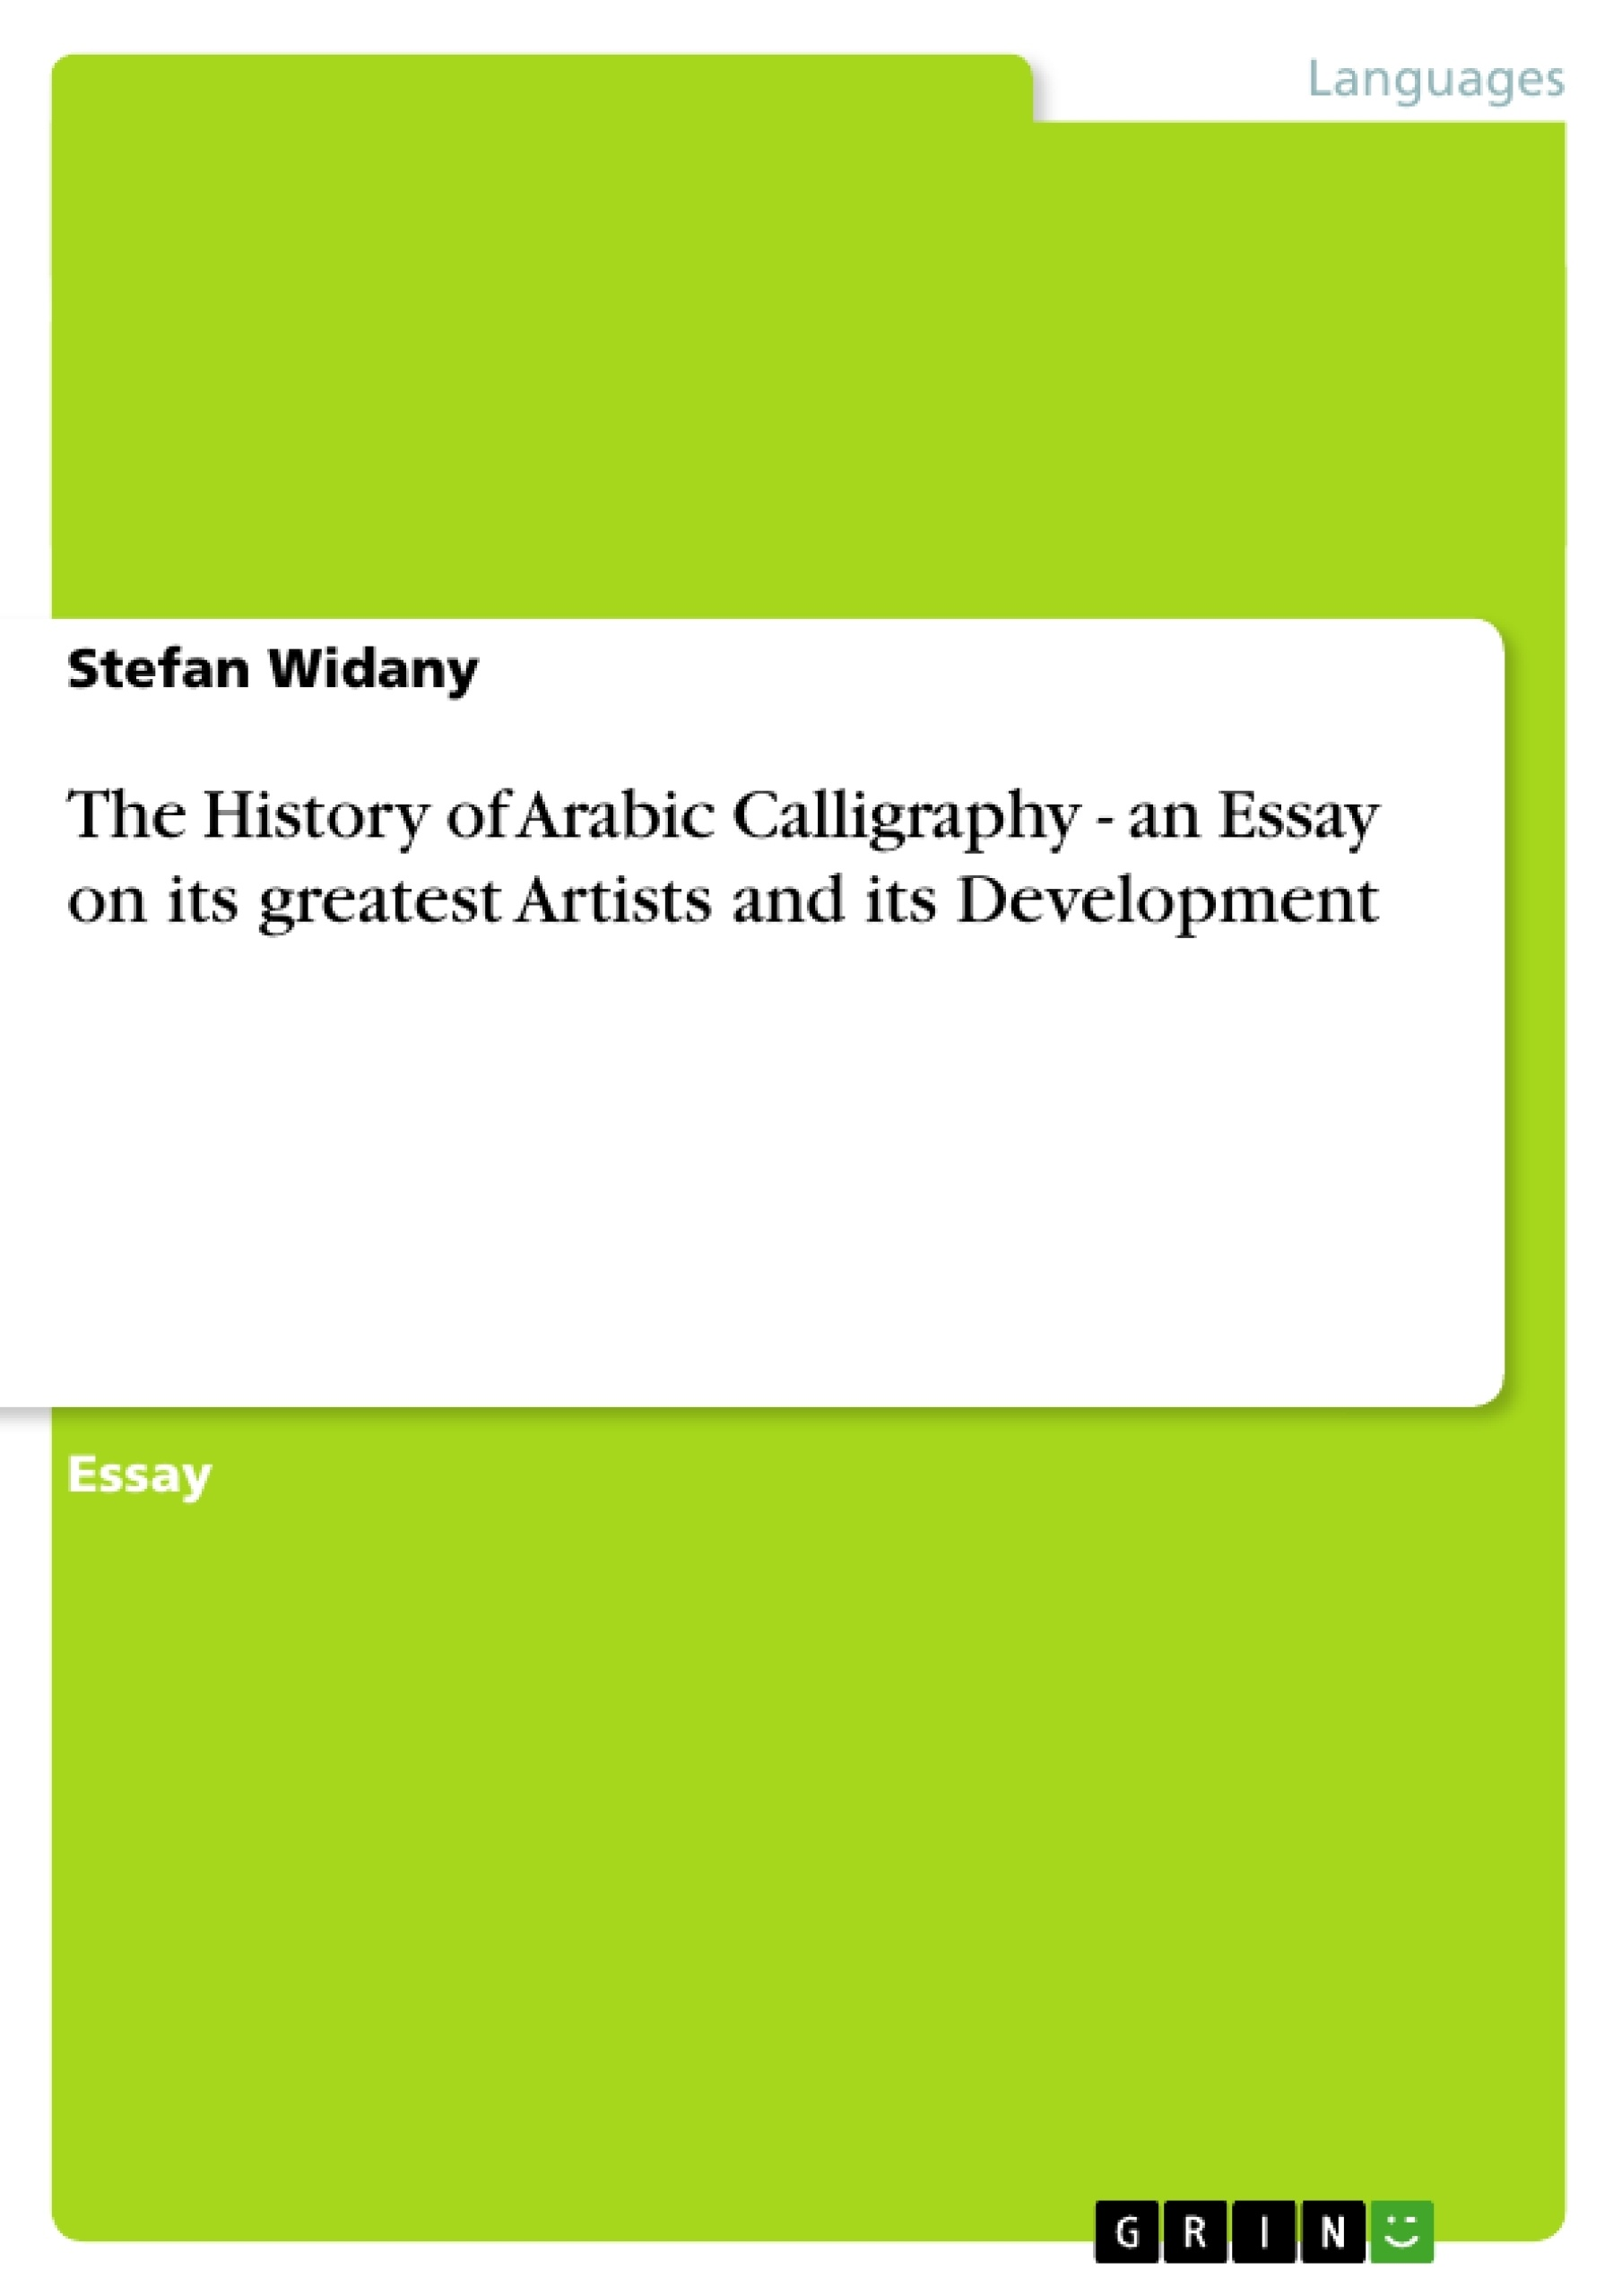 Title: The History of Arabic Calligraphy - an Essay on its greatest Artists and its Development